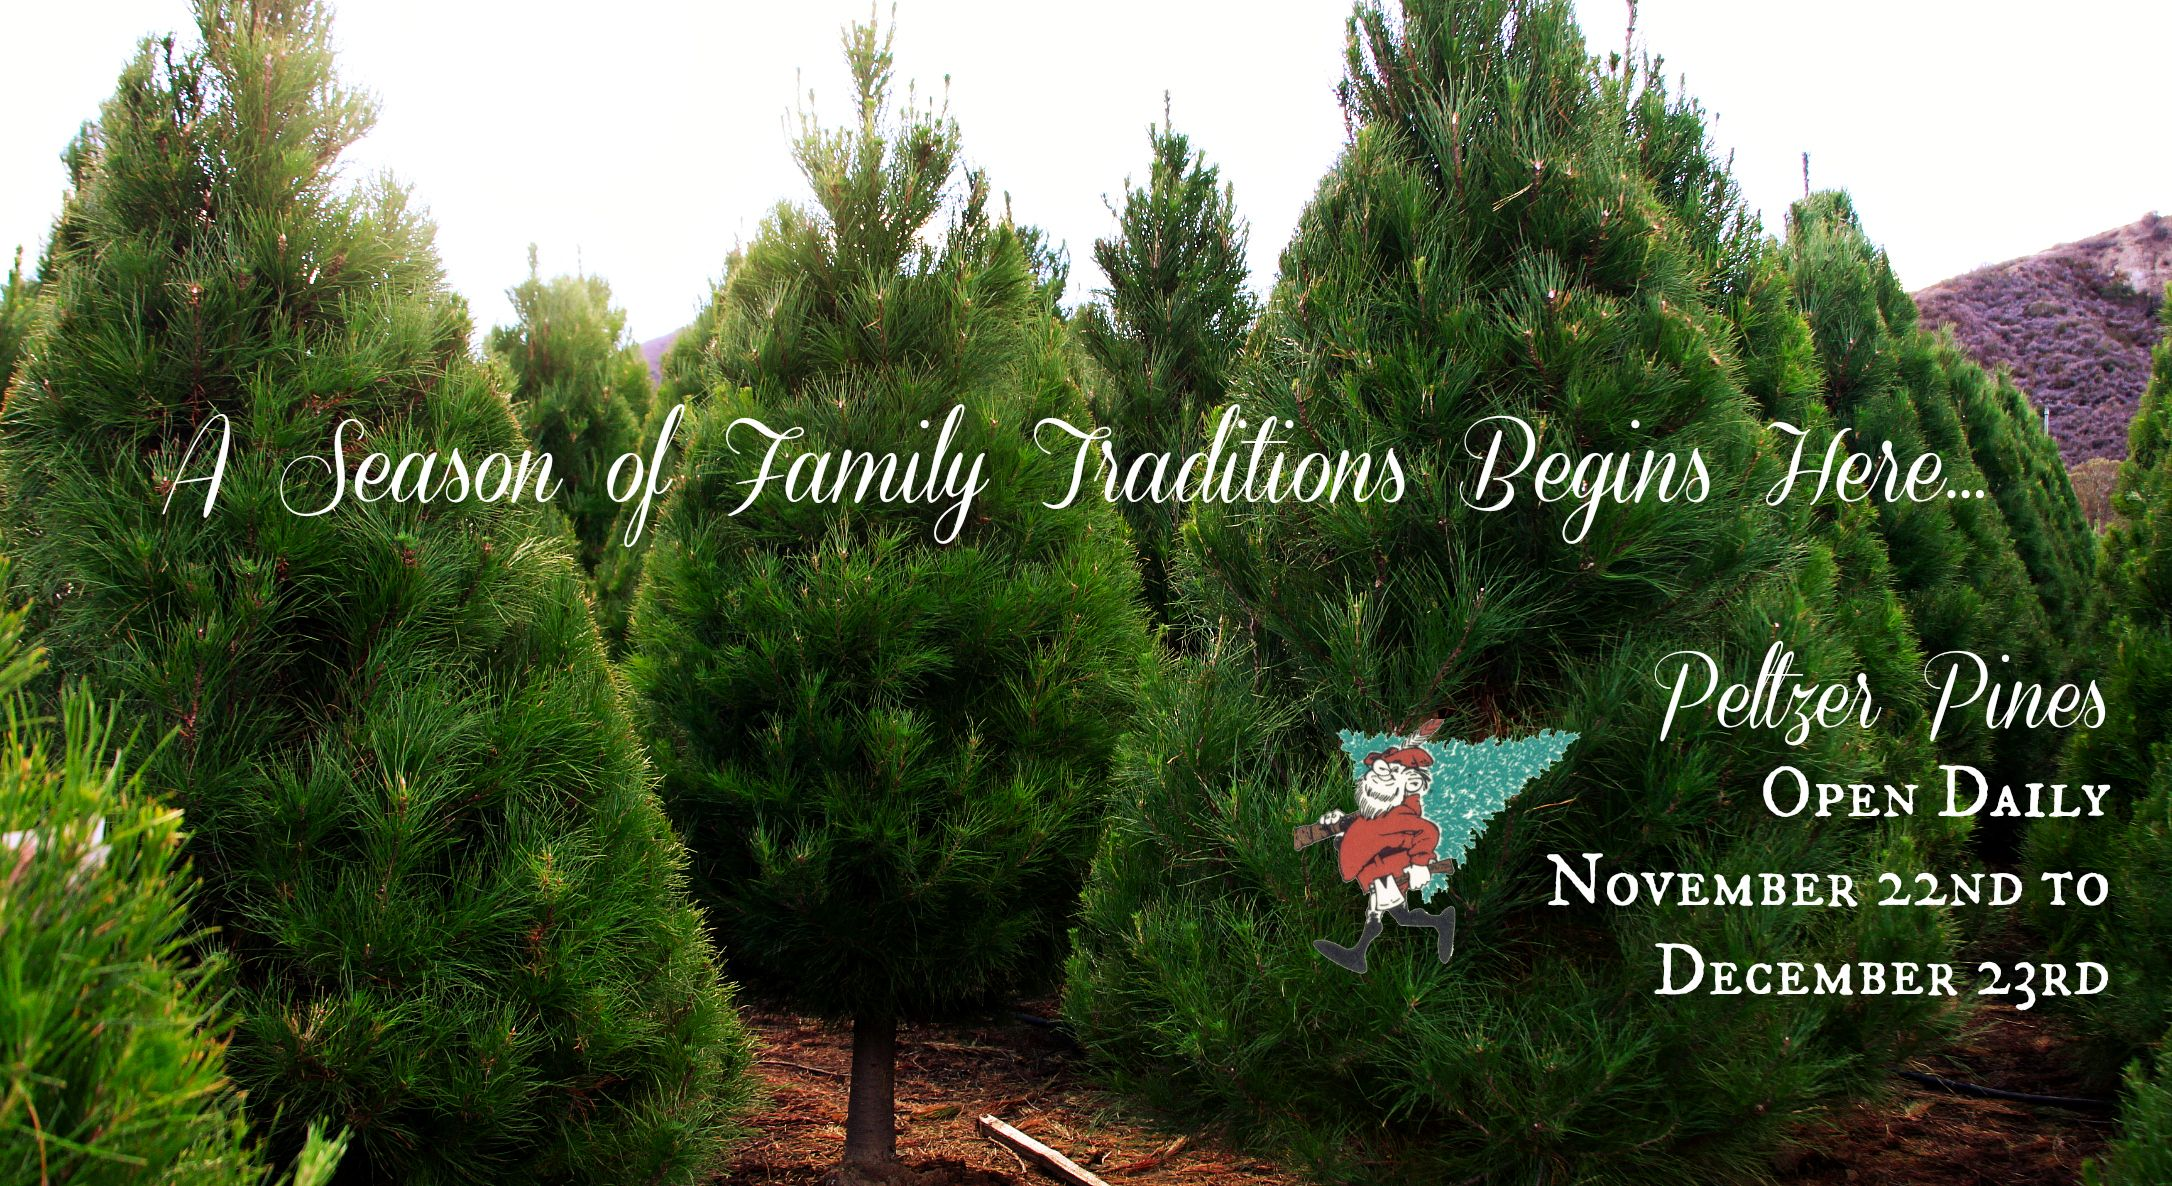 Peltzer Pines Choose and Cut Christmas Tree Farms A Season of